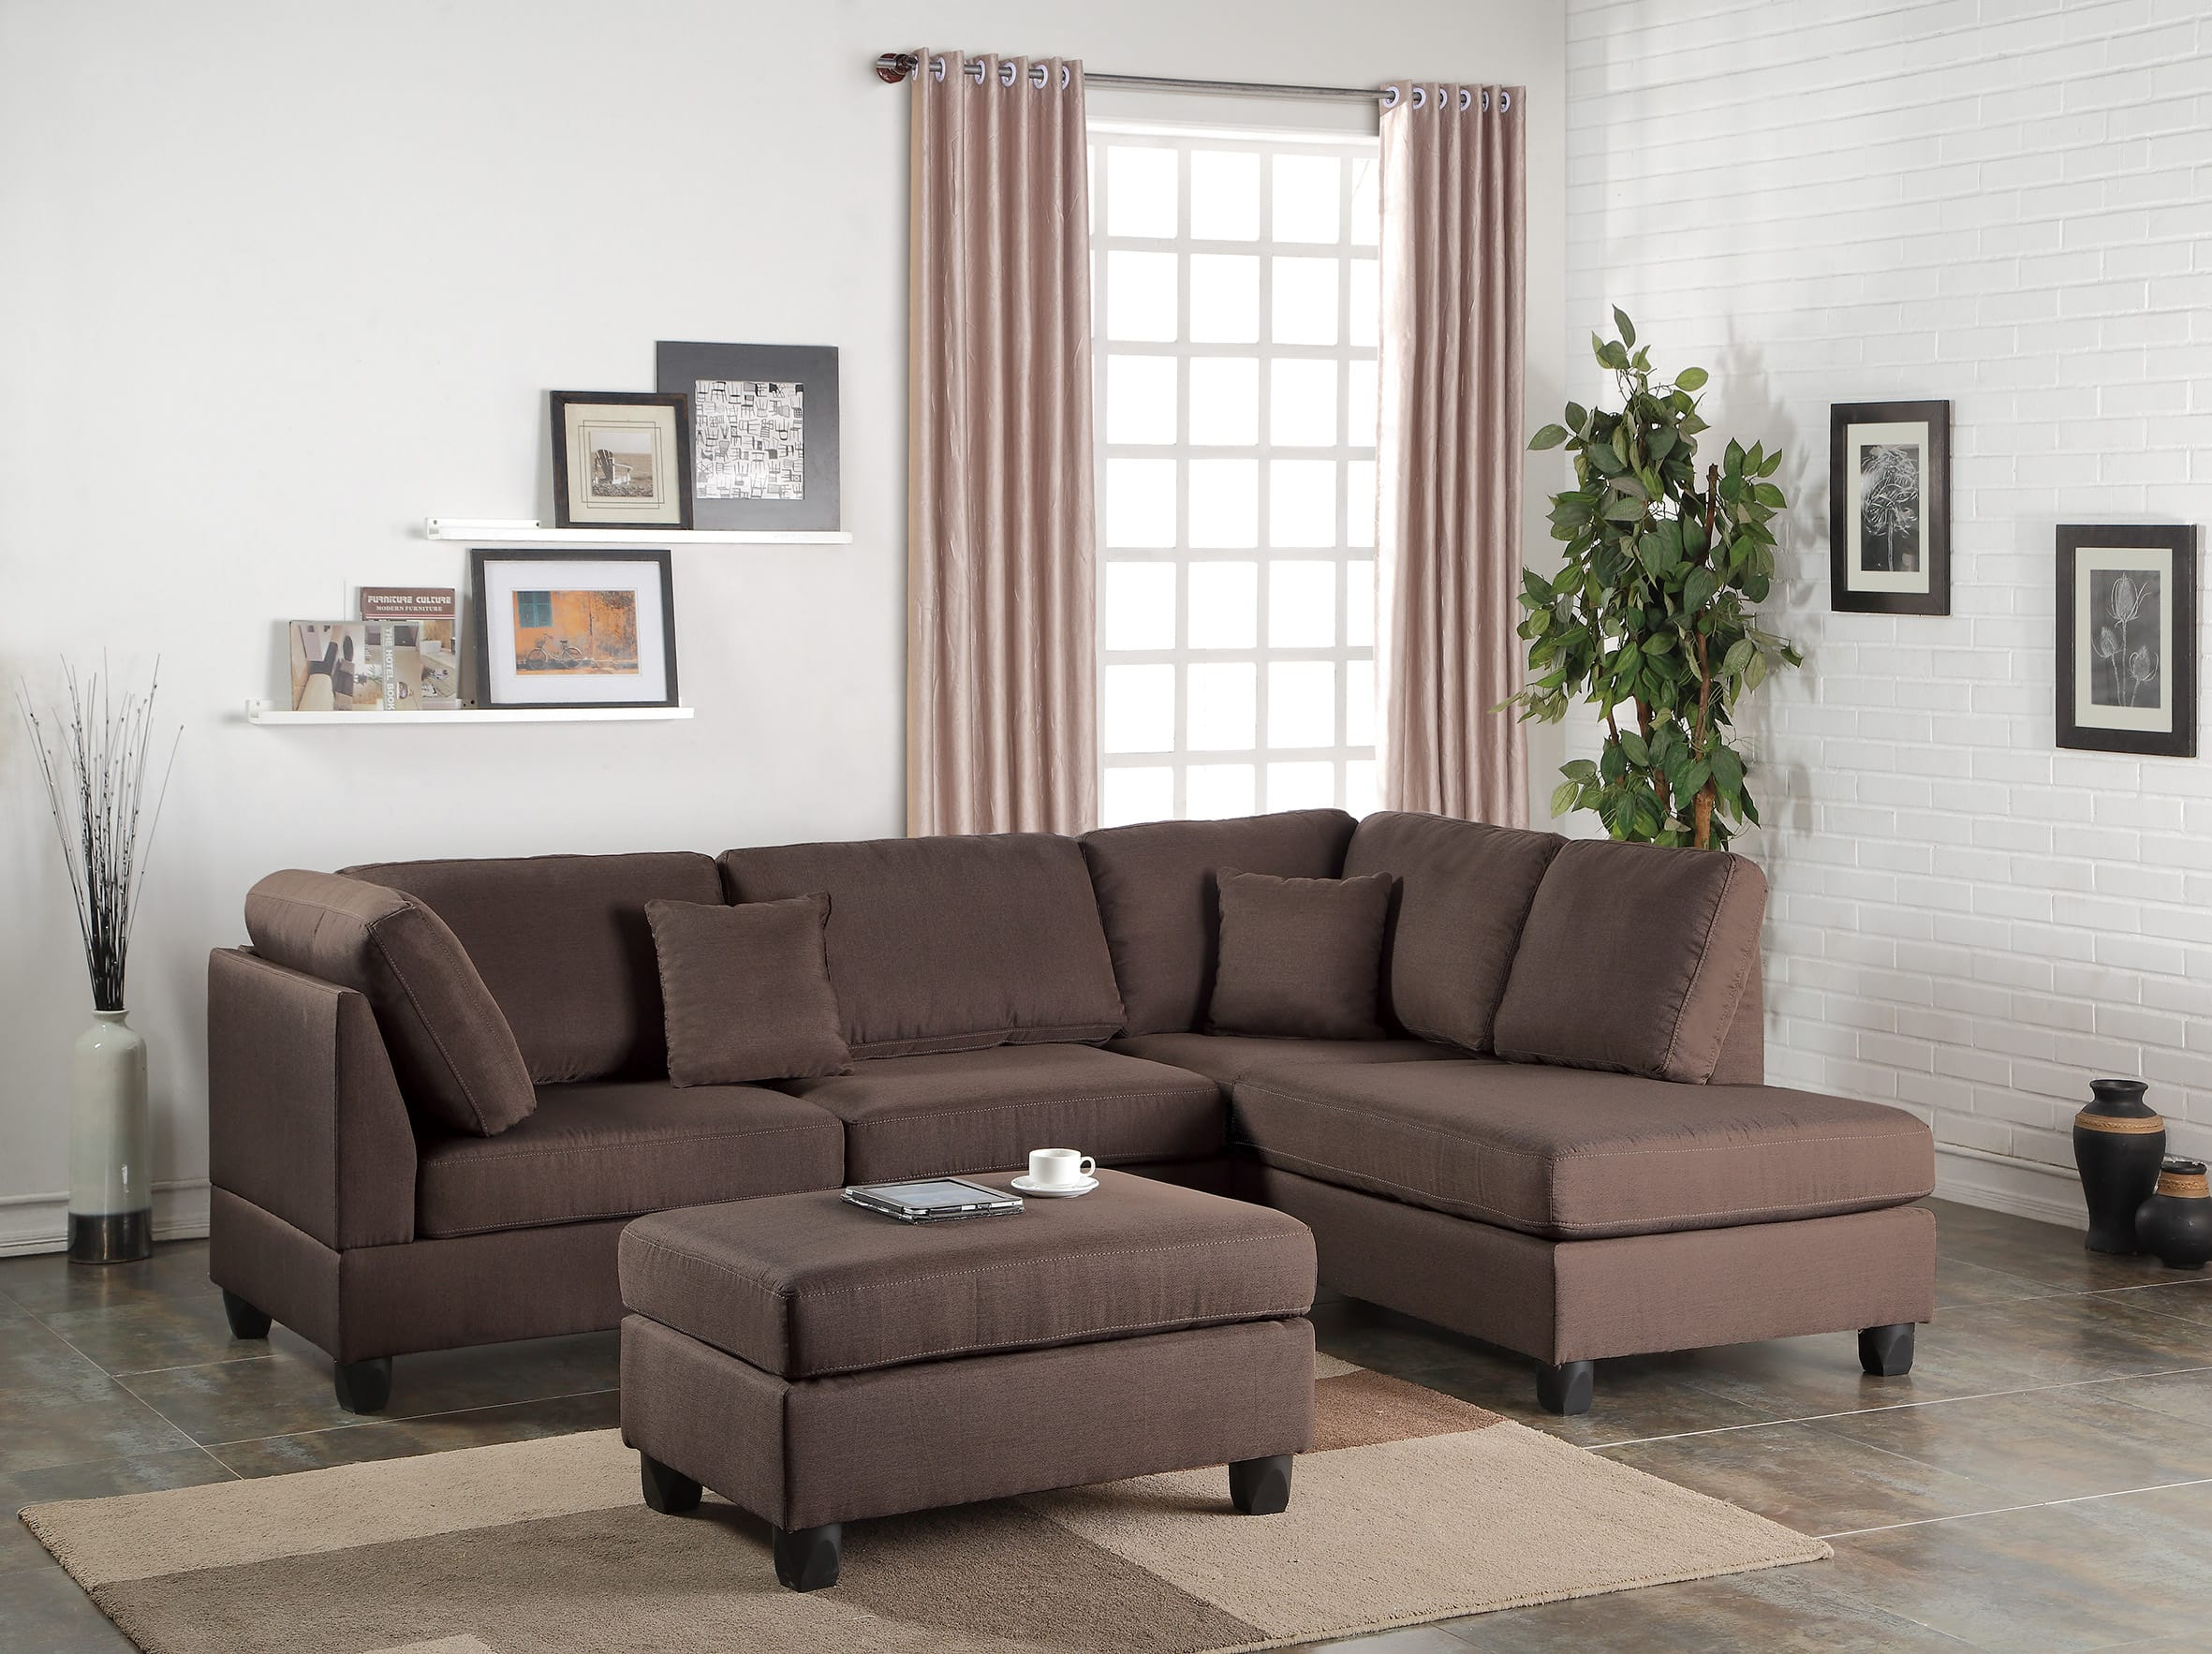 Brilliant F7608 Chocolate 2 Pcs Sectional Sofa Set By Poundex Inzonedesignstudio Interior Chair Design Inzonedesignstudiocom